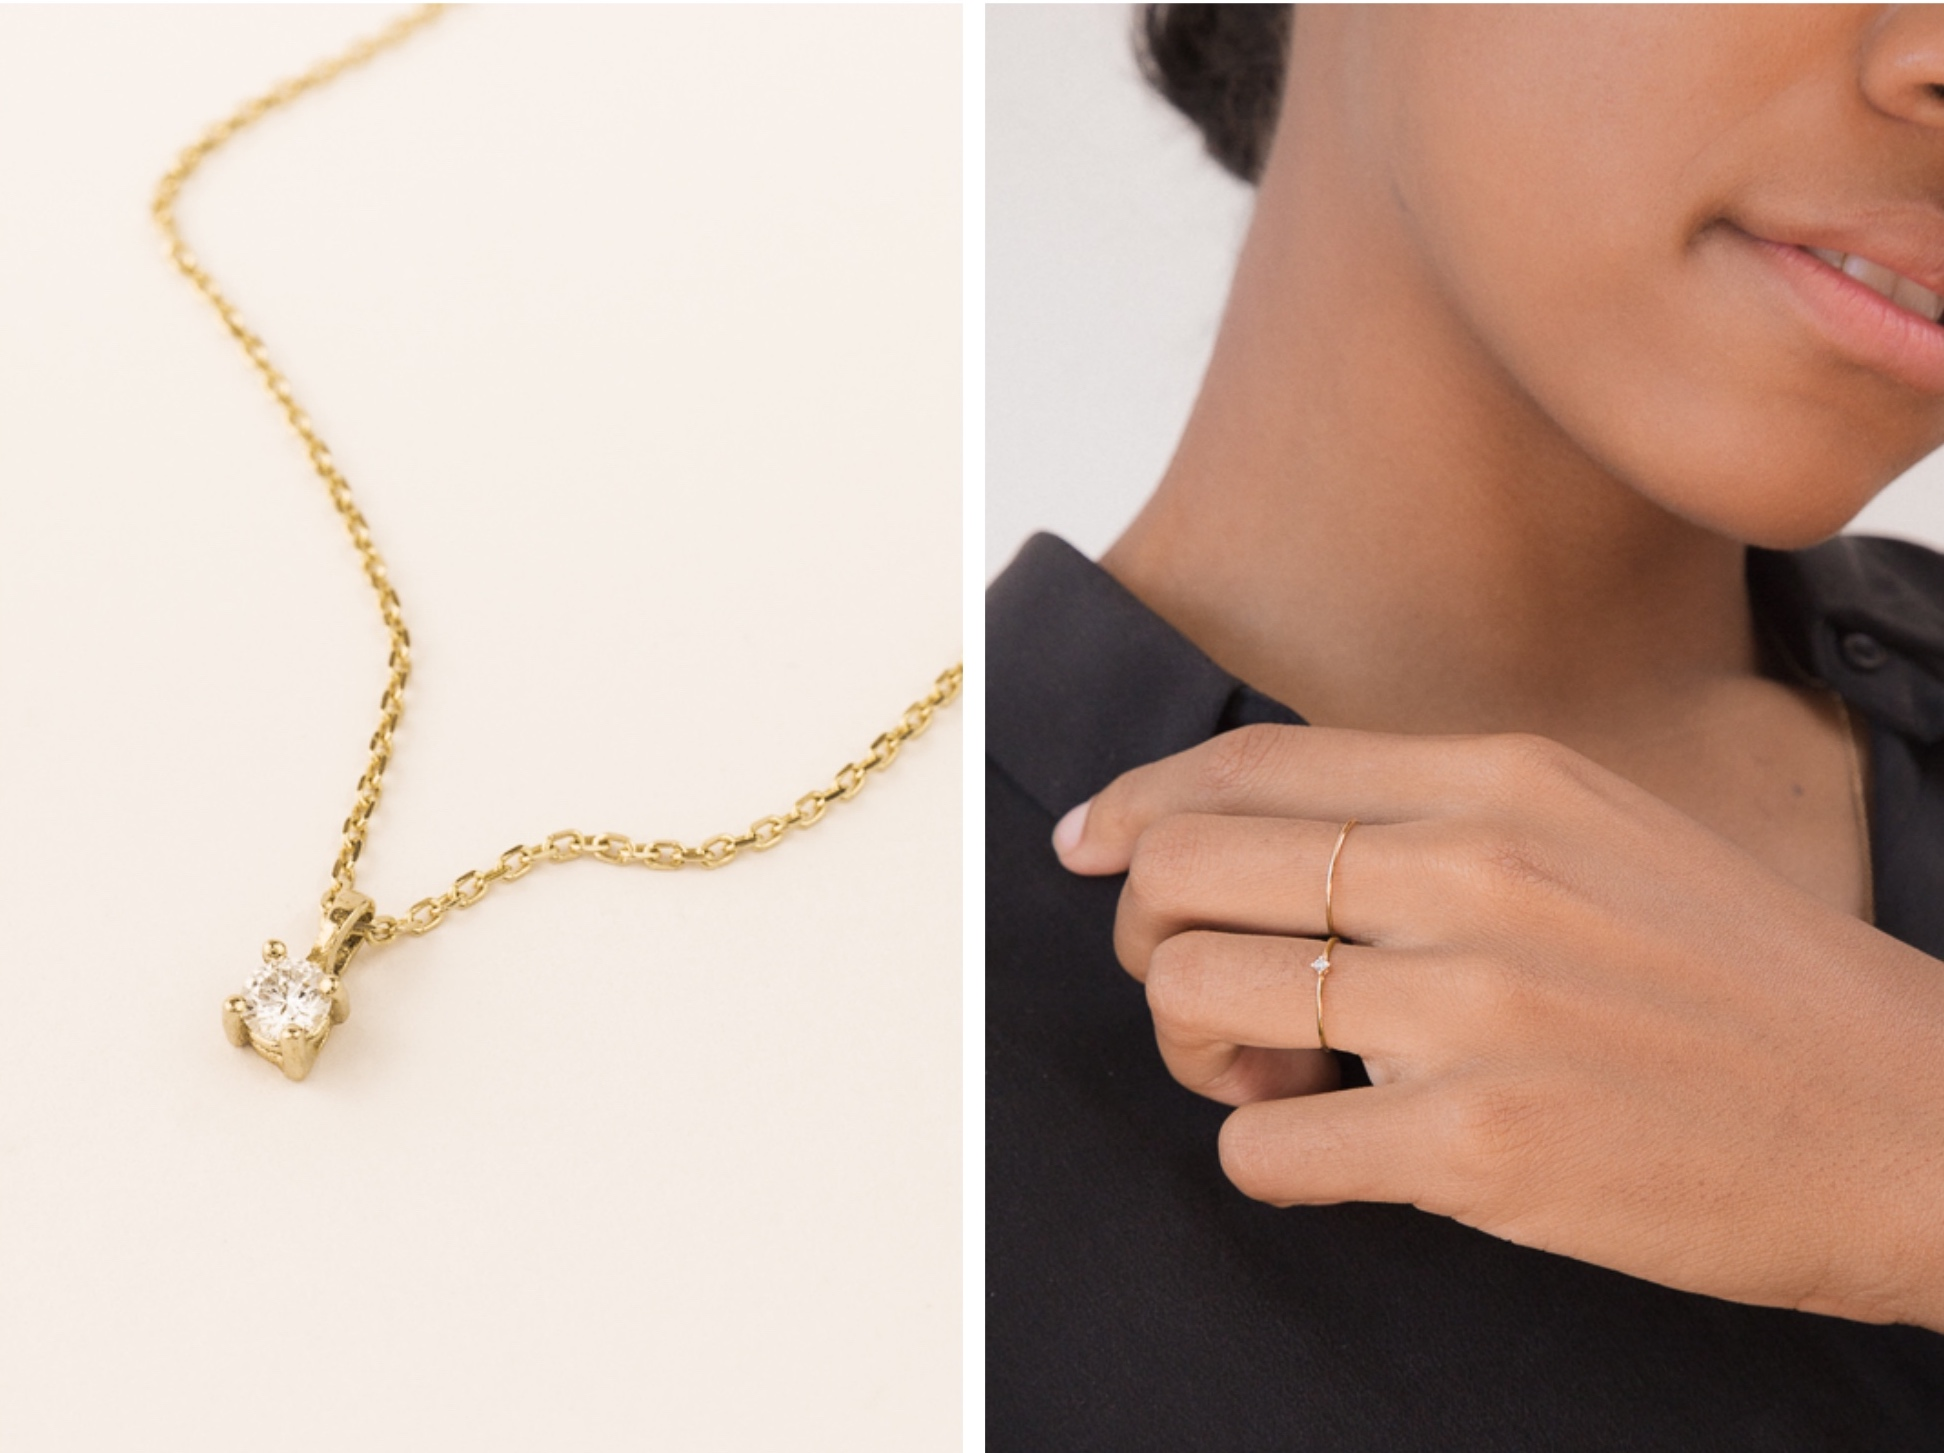 80ca60c4bb52ce The sustainable and ethical jewelry brand from Sweden makes minimalist,  super simple diamond pieces we love. Whether to a cocktail dress or to  jeans and a ...